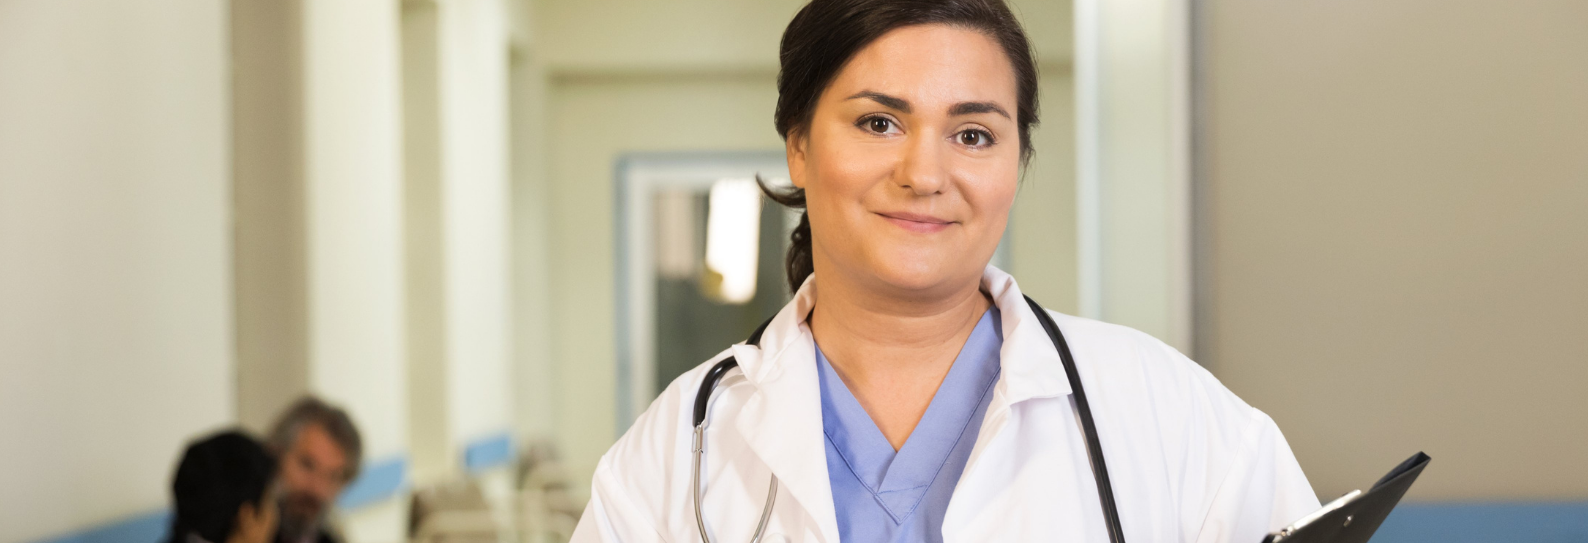 Photo of a female doctor